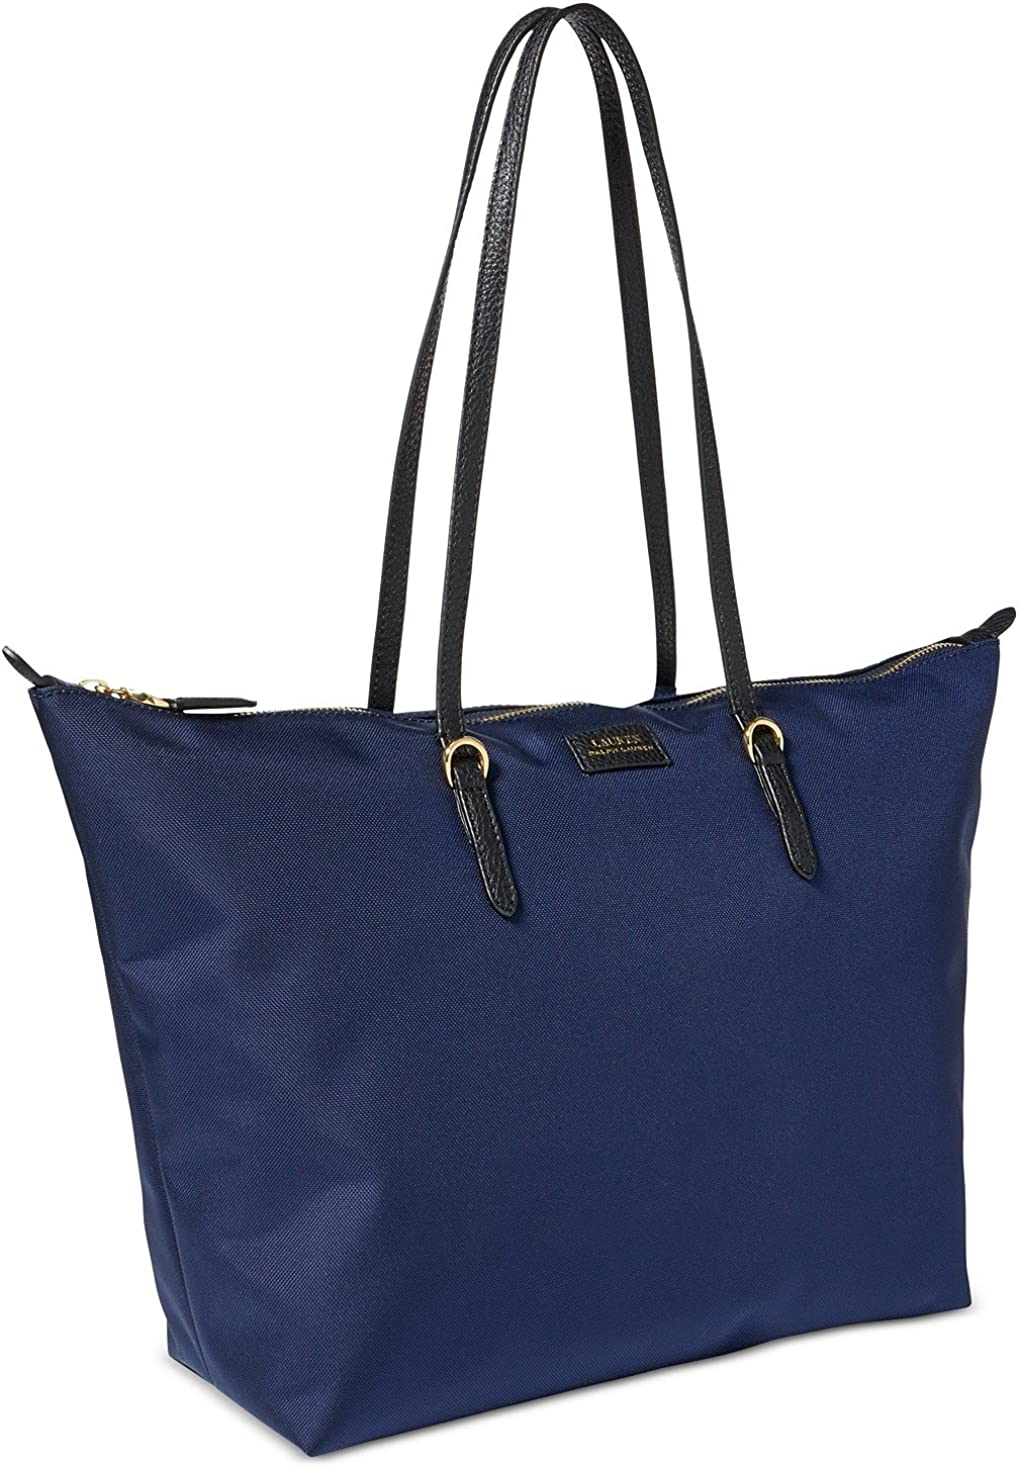 Lauren Ralph Lauren Chadwick Medium Nylon Tote Navy